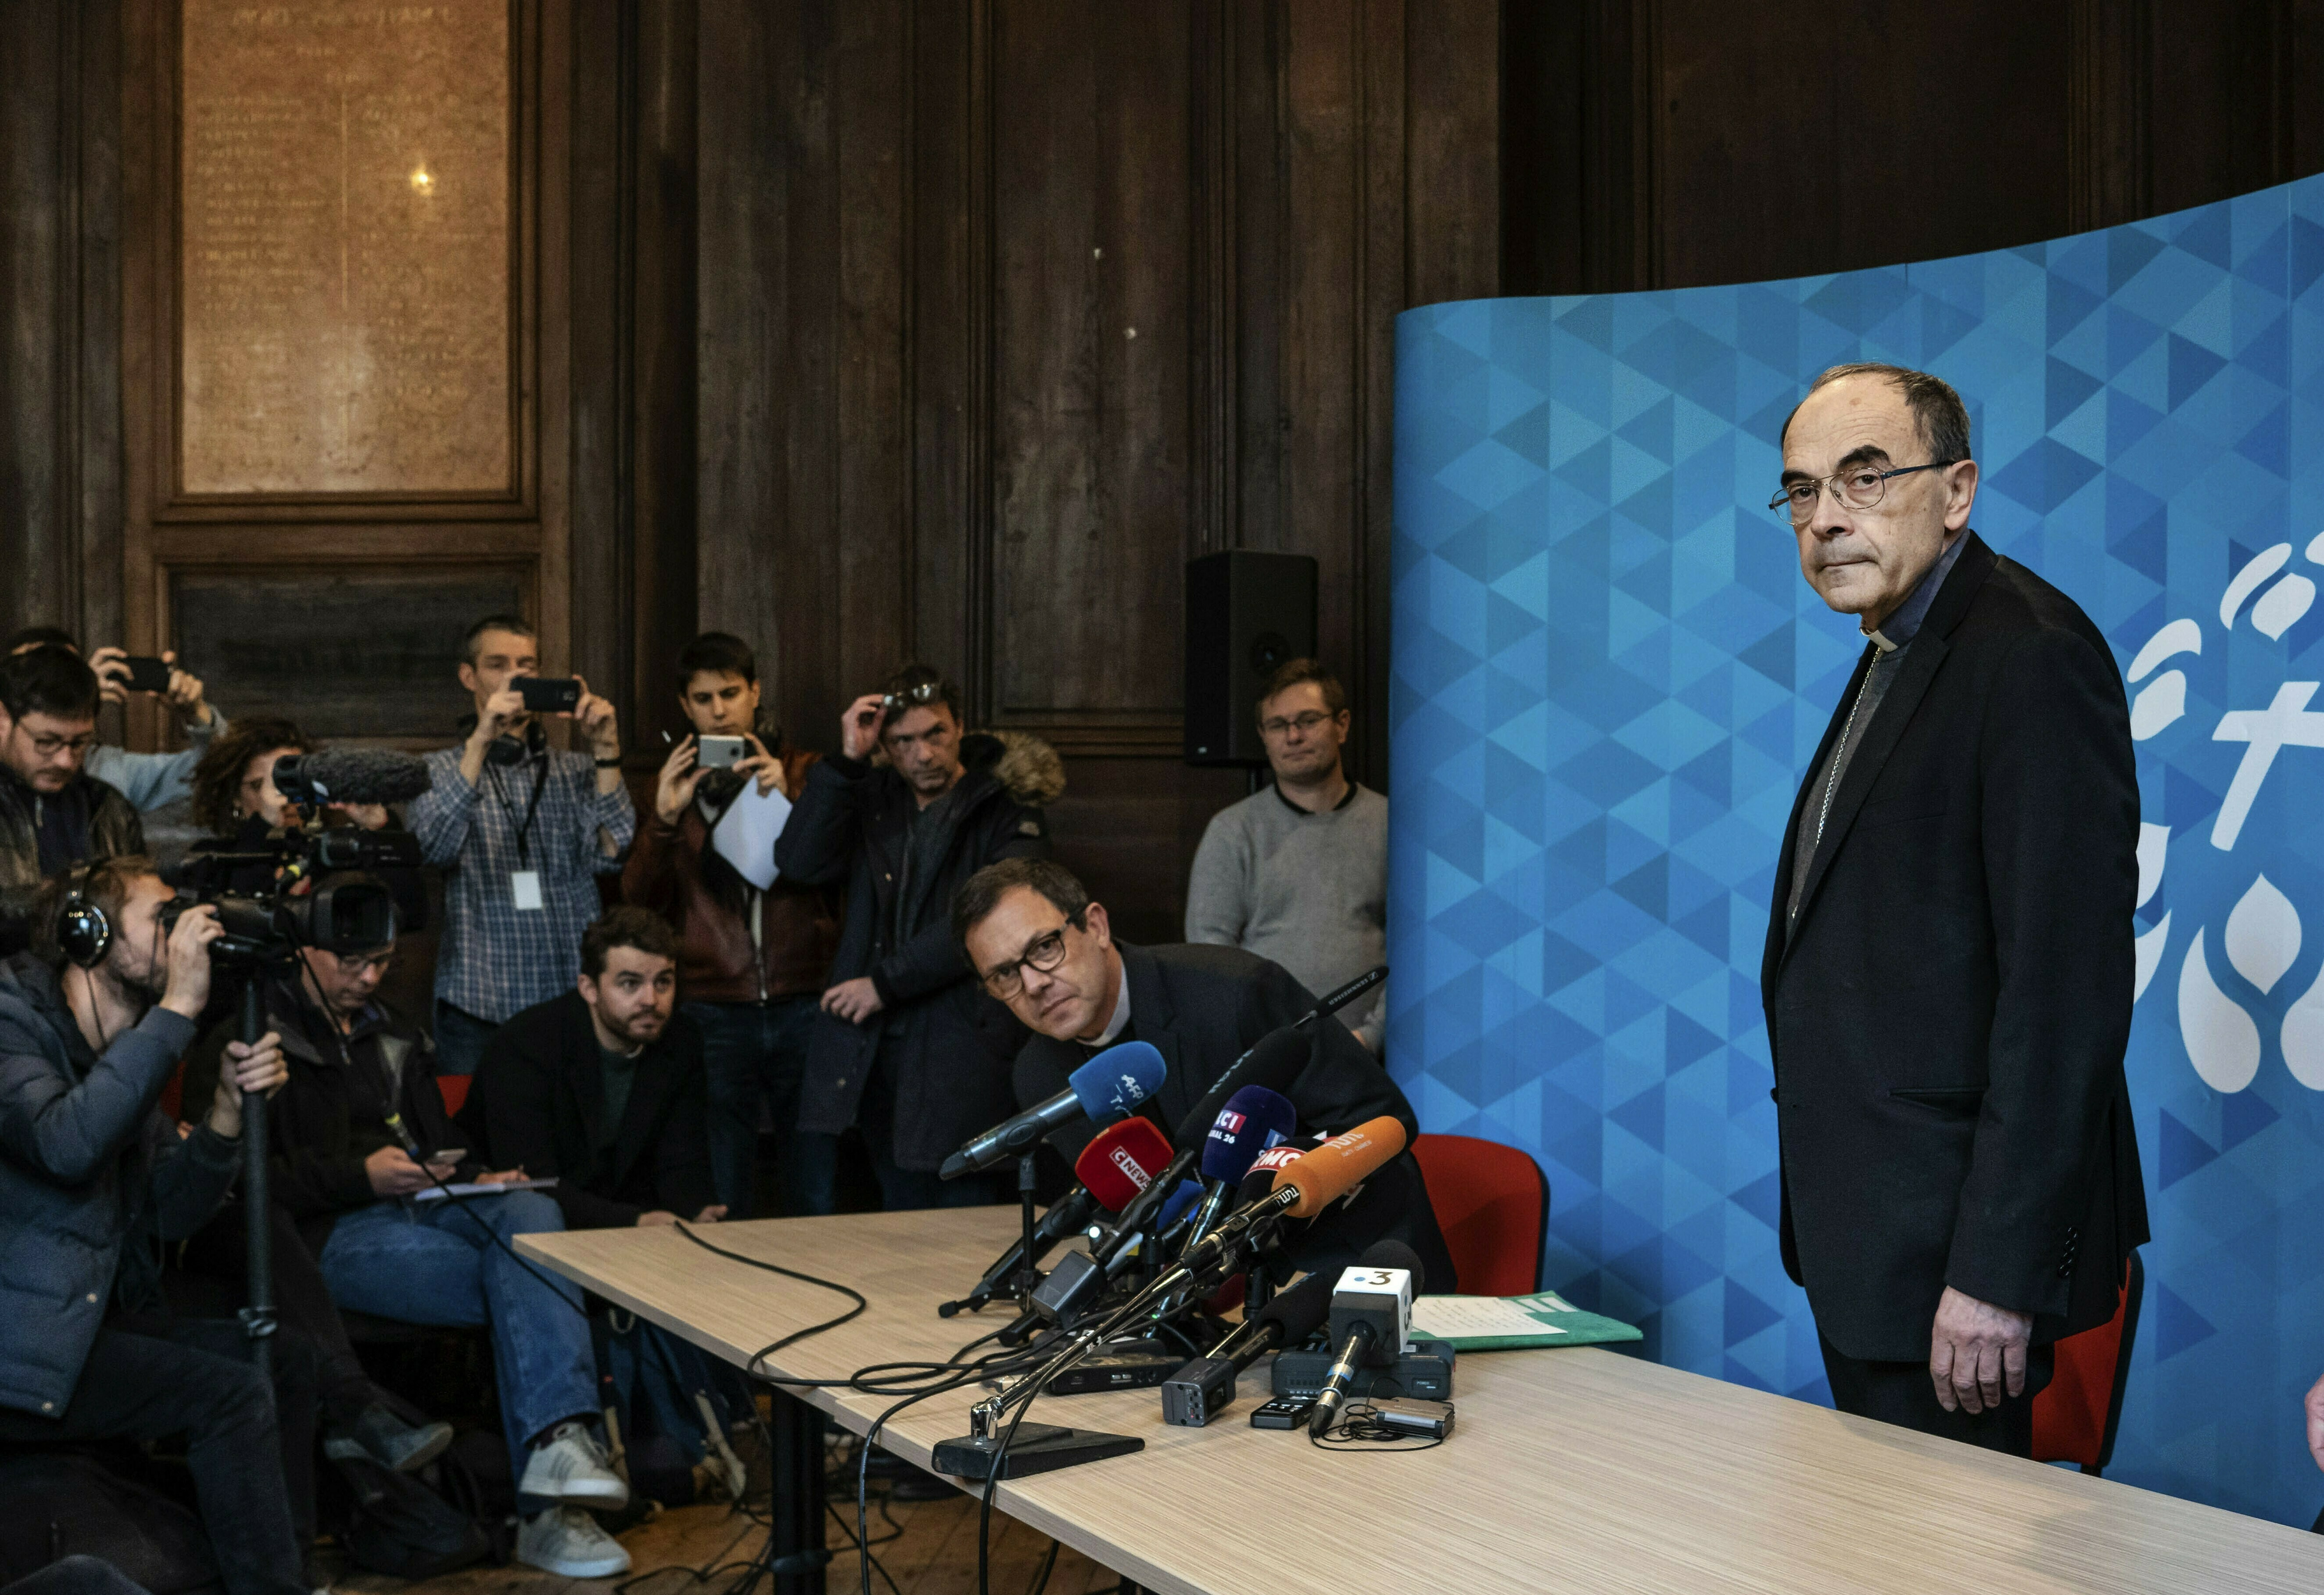 French Cardinal Philippe Barbarin, right, arrives for a press conference in Lyon, central France, Thursday, March 7, 2019. Barbarin offers his resignation to the Pope after a court on Thursday found him guilty of failing to report to authorities allegations of sexual abuse of minors by a priest. (AP Photo/Laurent Cipriani)